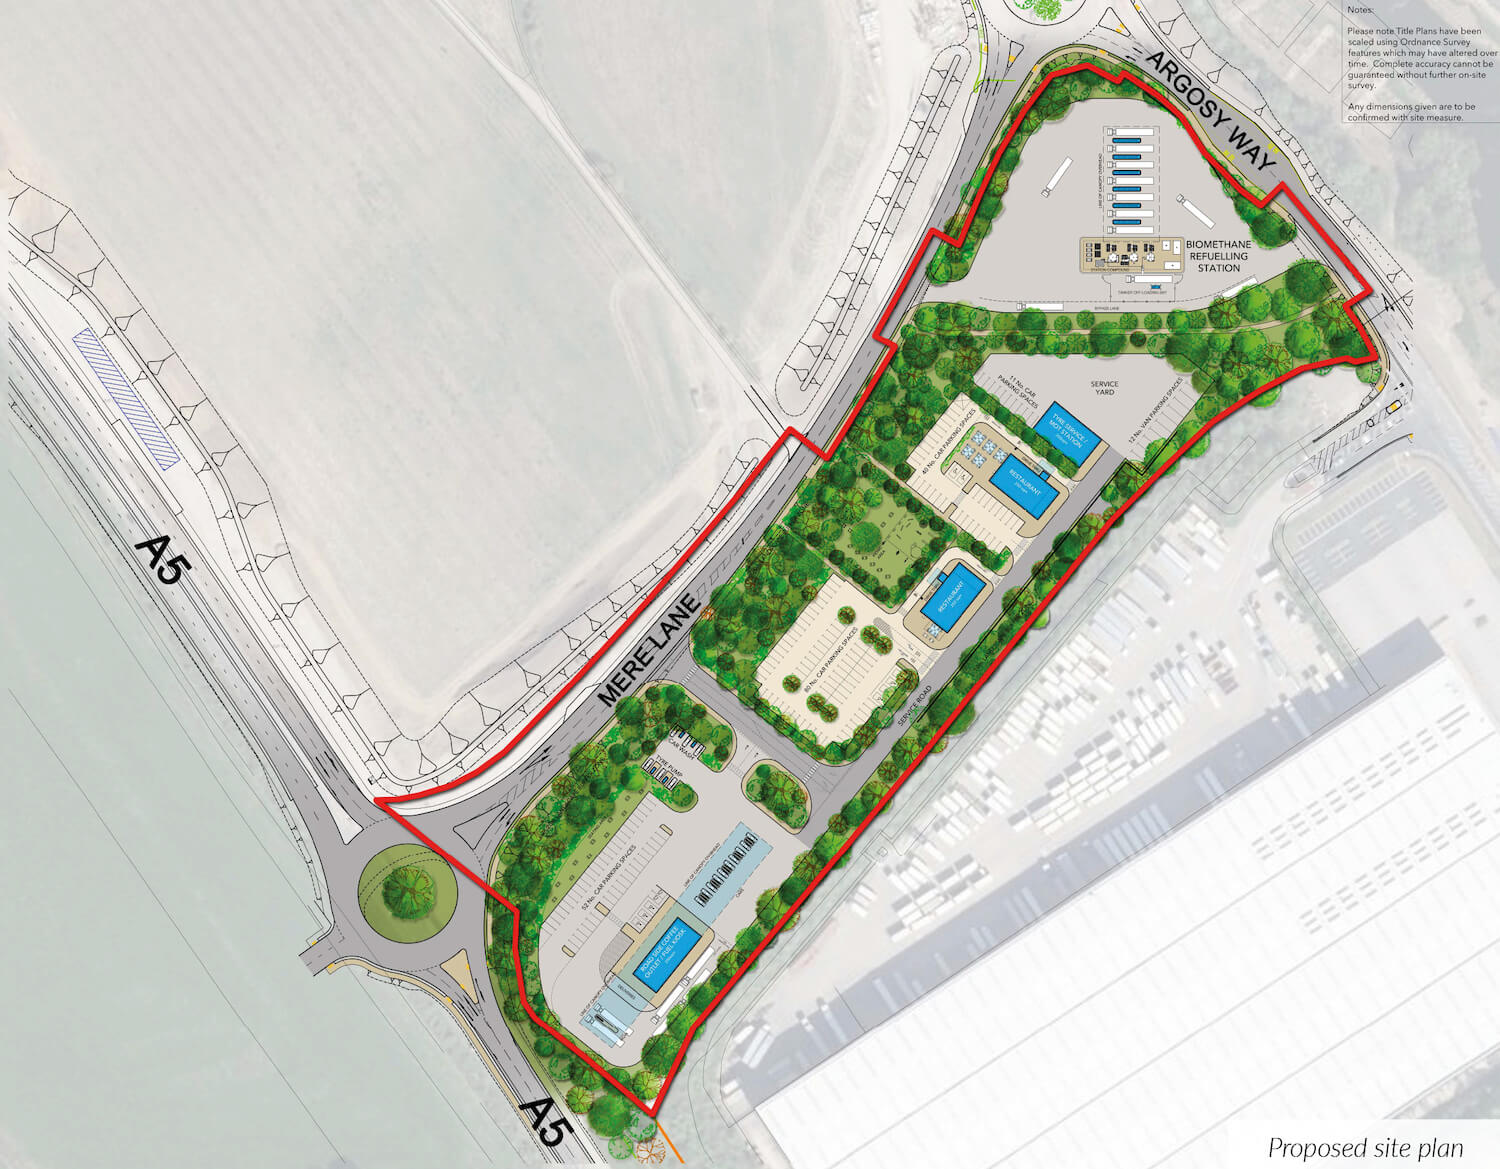 Proposed petrol station view